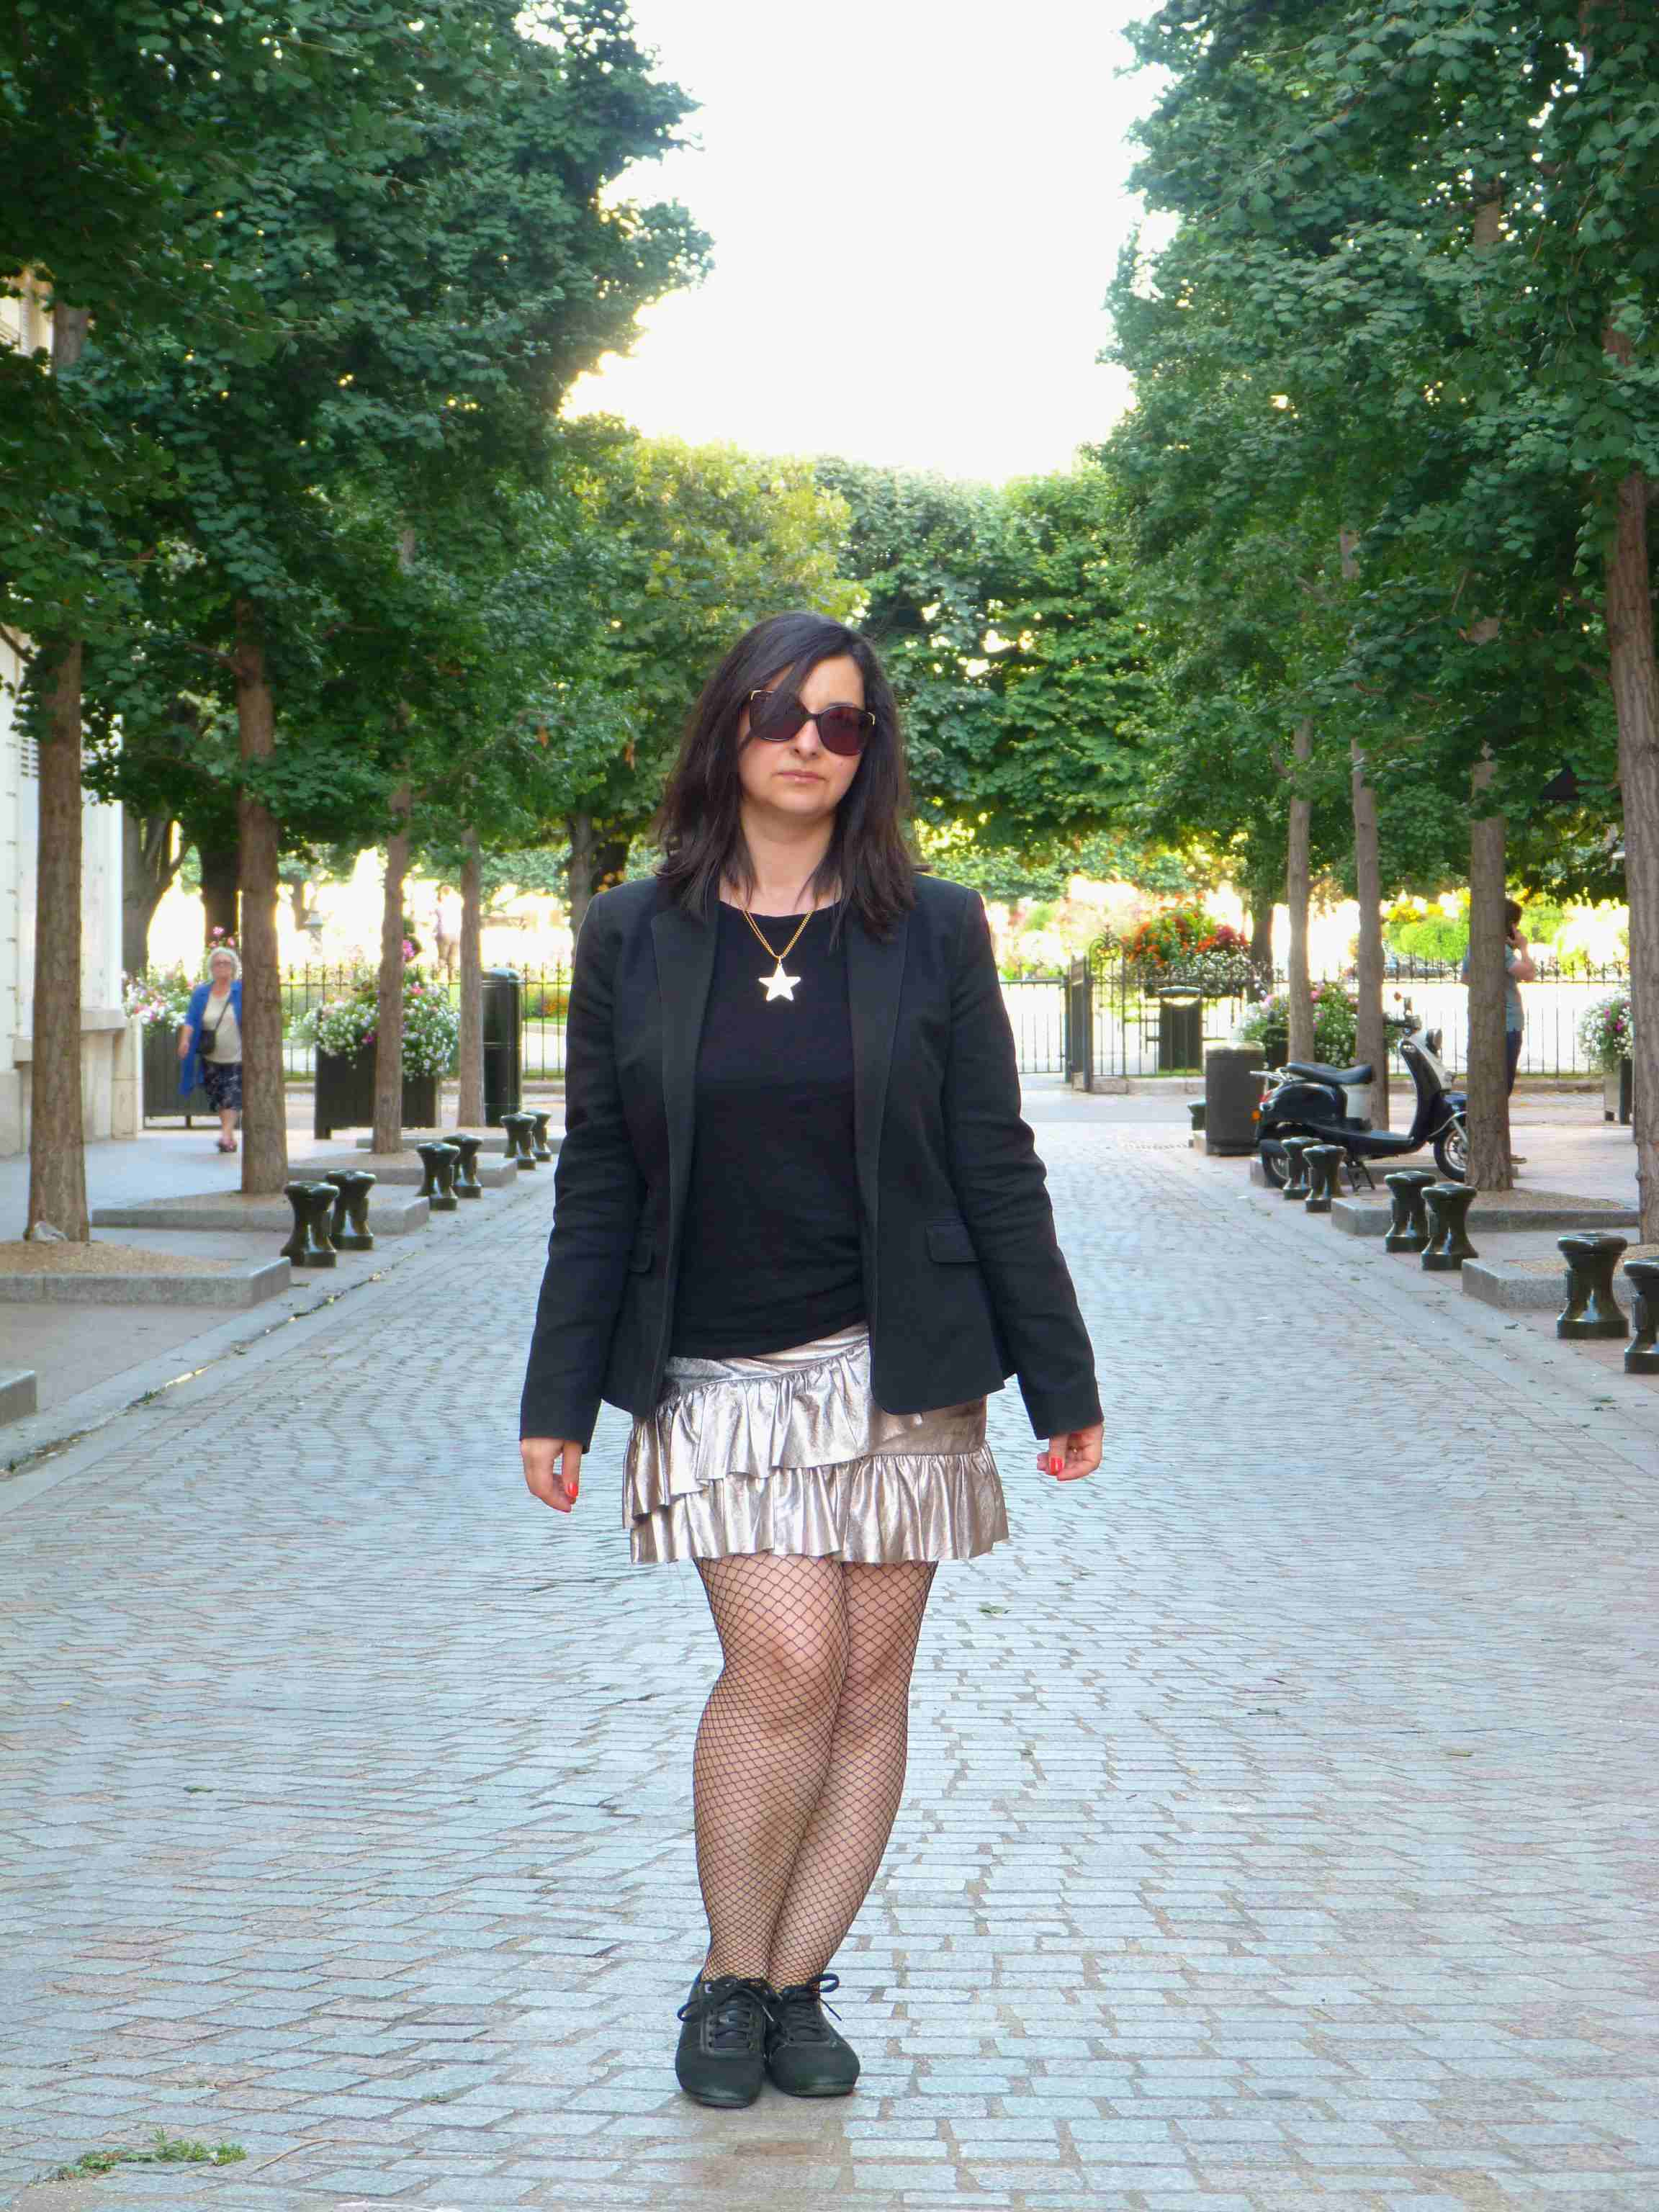 Metallic skirt - Pull & Bear (11B)